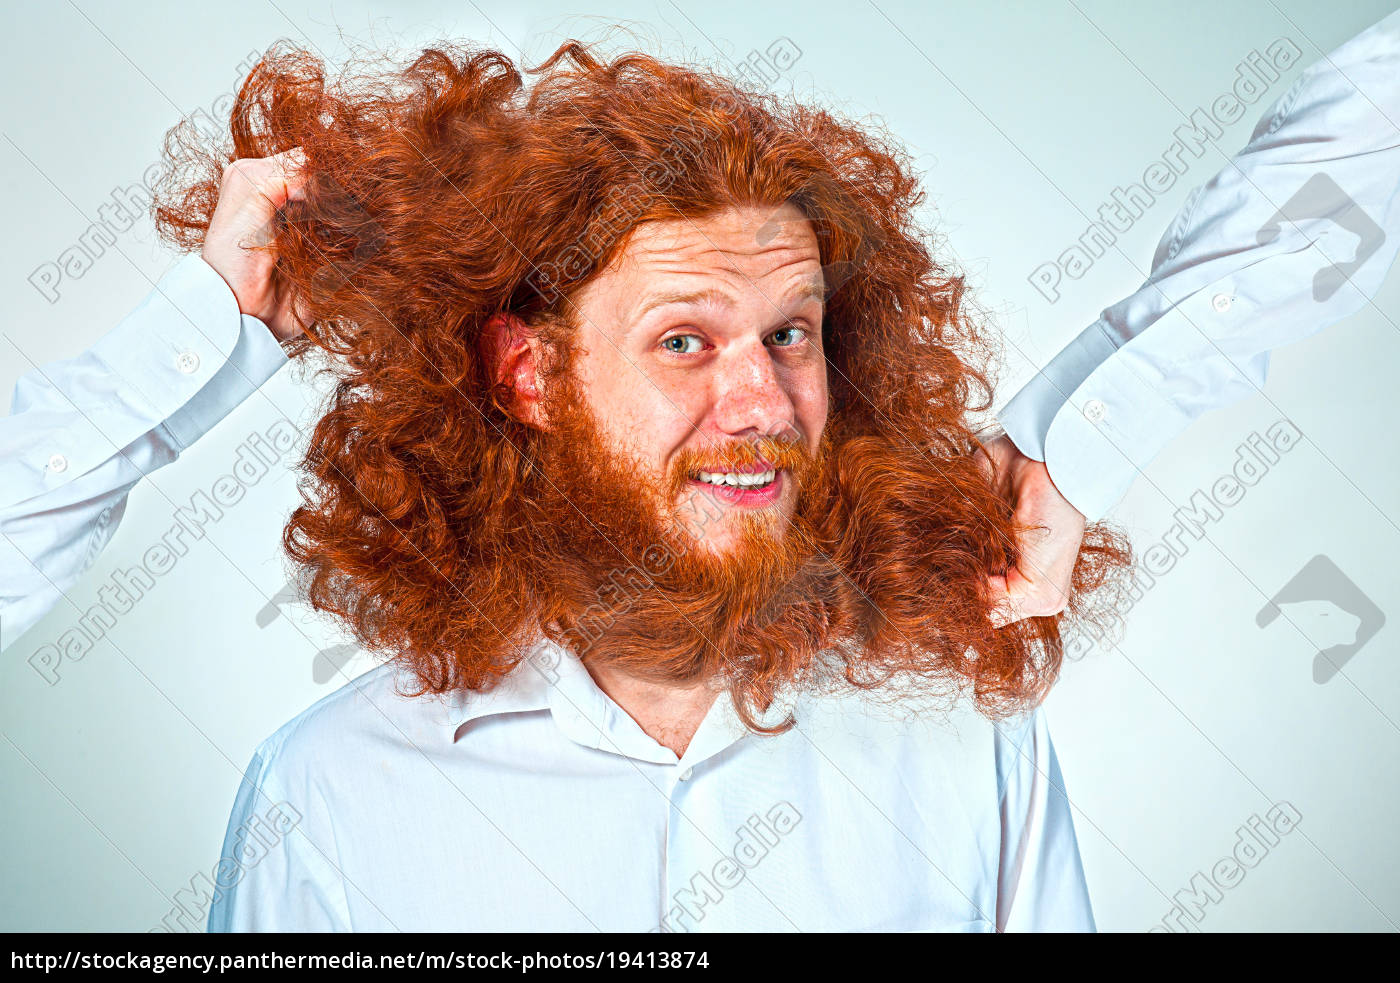 the, angry, man, tearing, his, hair - 19413874